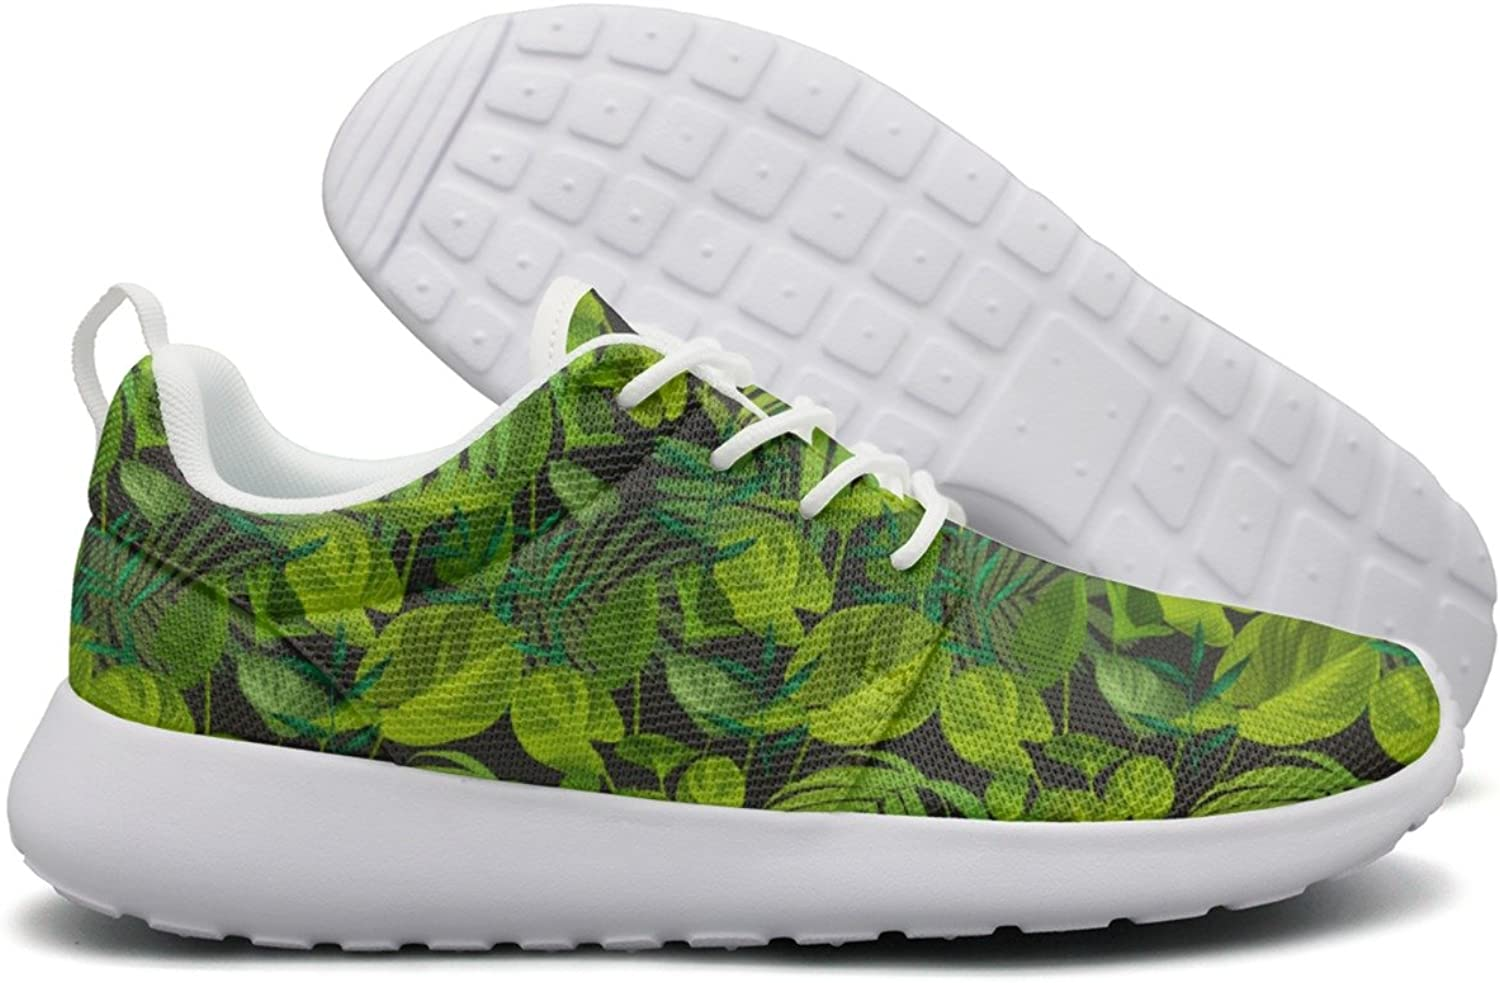 Tropical Leaf Pattern Women's New Casual Running shoes Novelty Cute